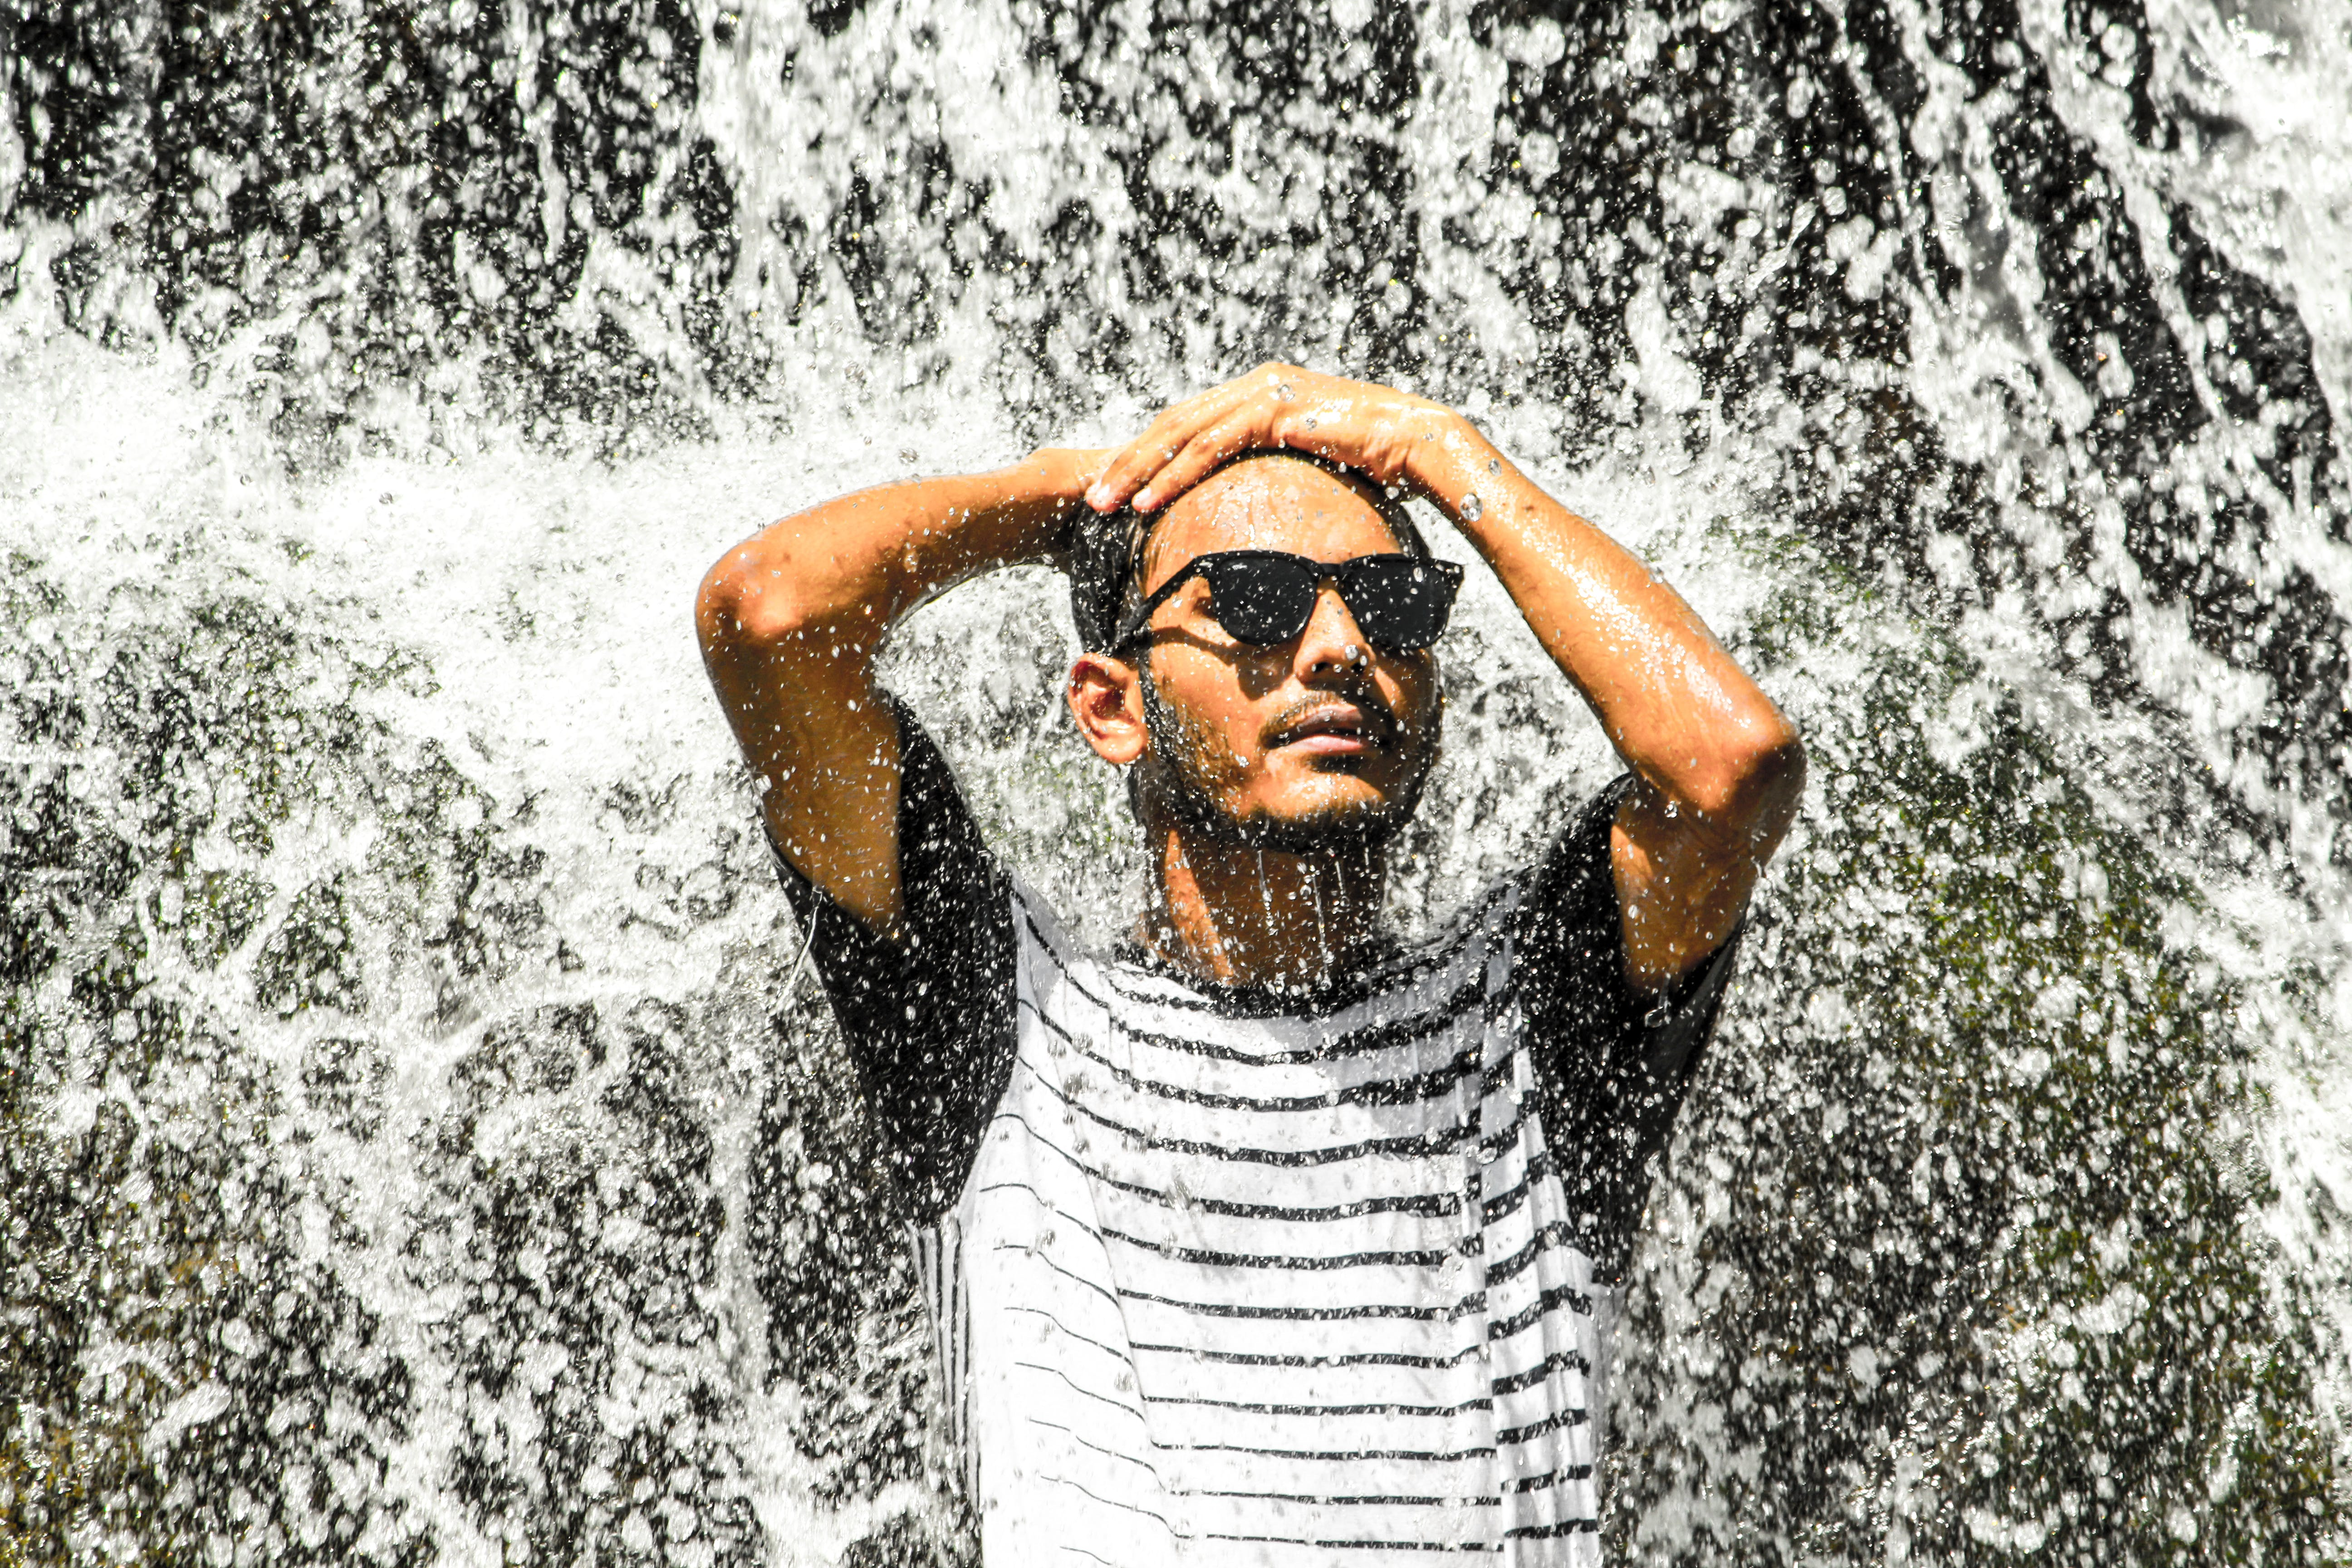 Free stock photo of man, person, sunglasses, water